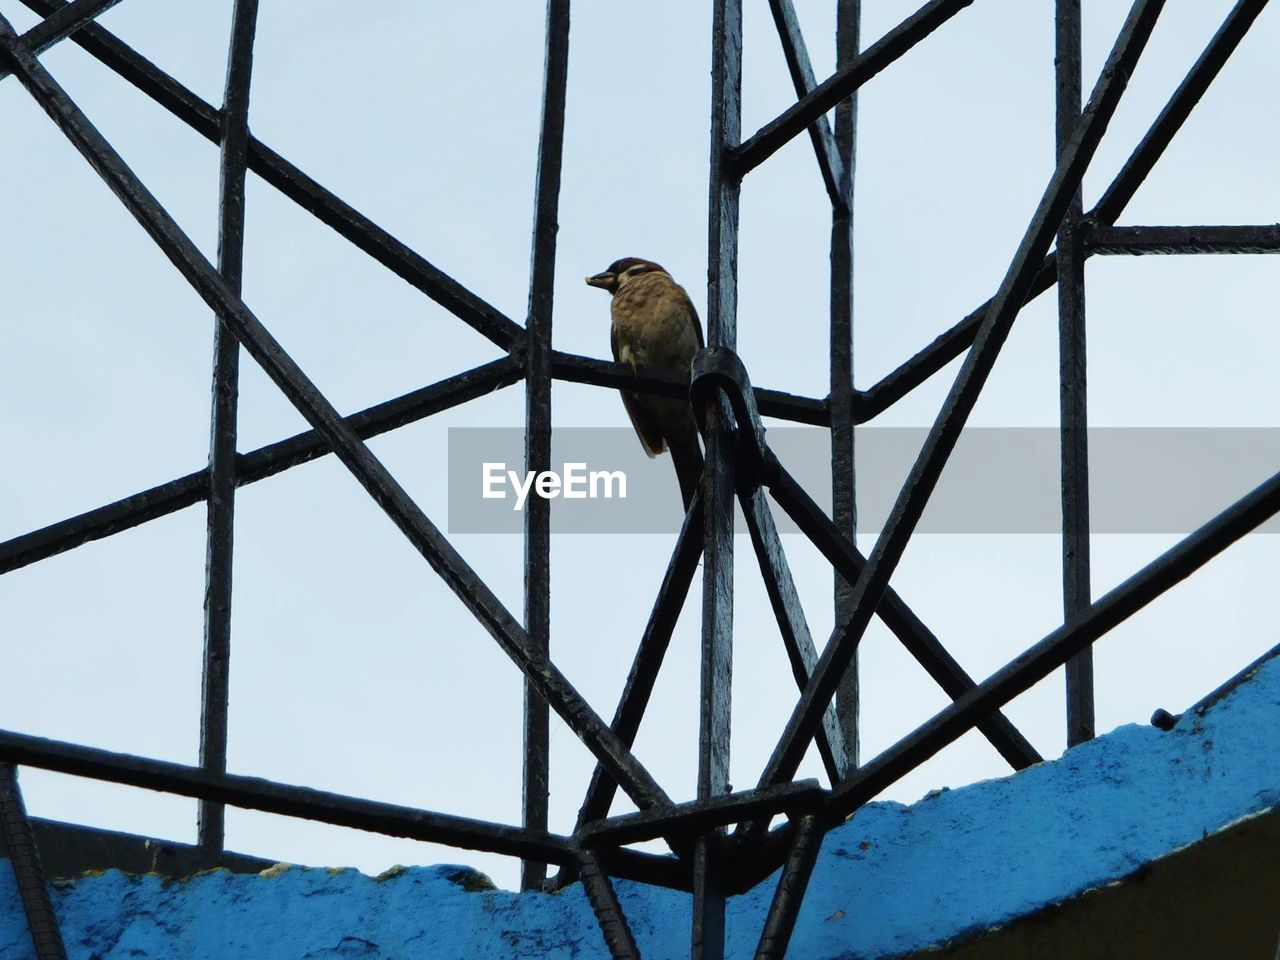 bird, animals in the wild, perching, animal themes, one animal, animal wildlife, low angle view, day, no people, outdoors, nature, sky